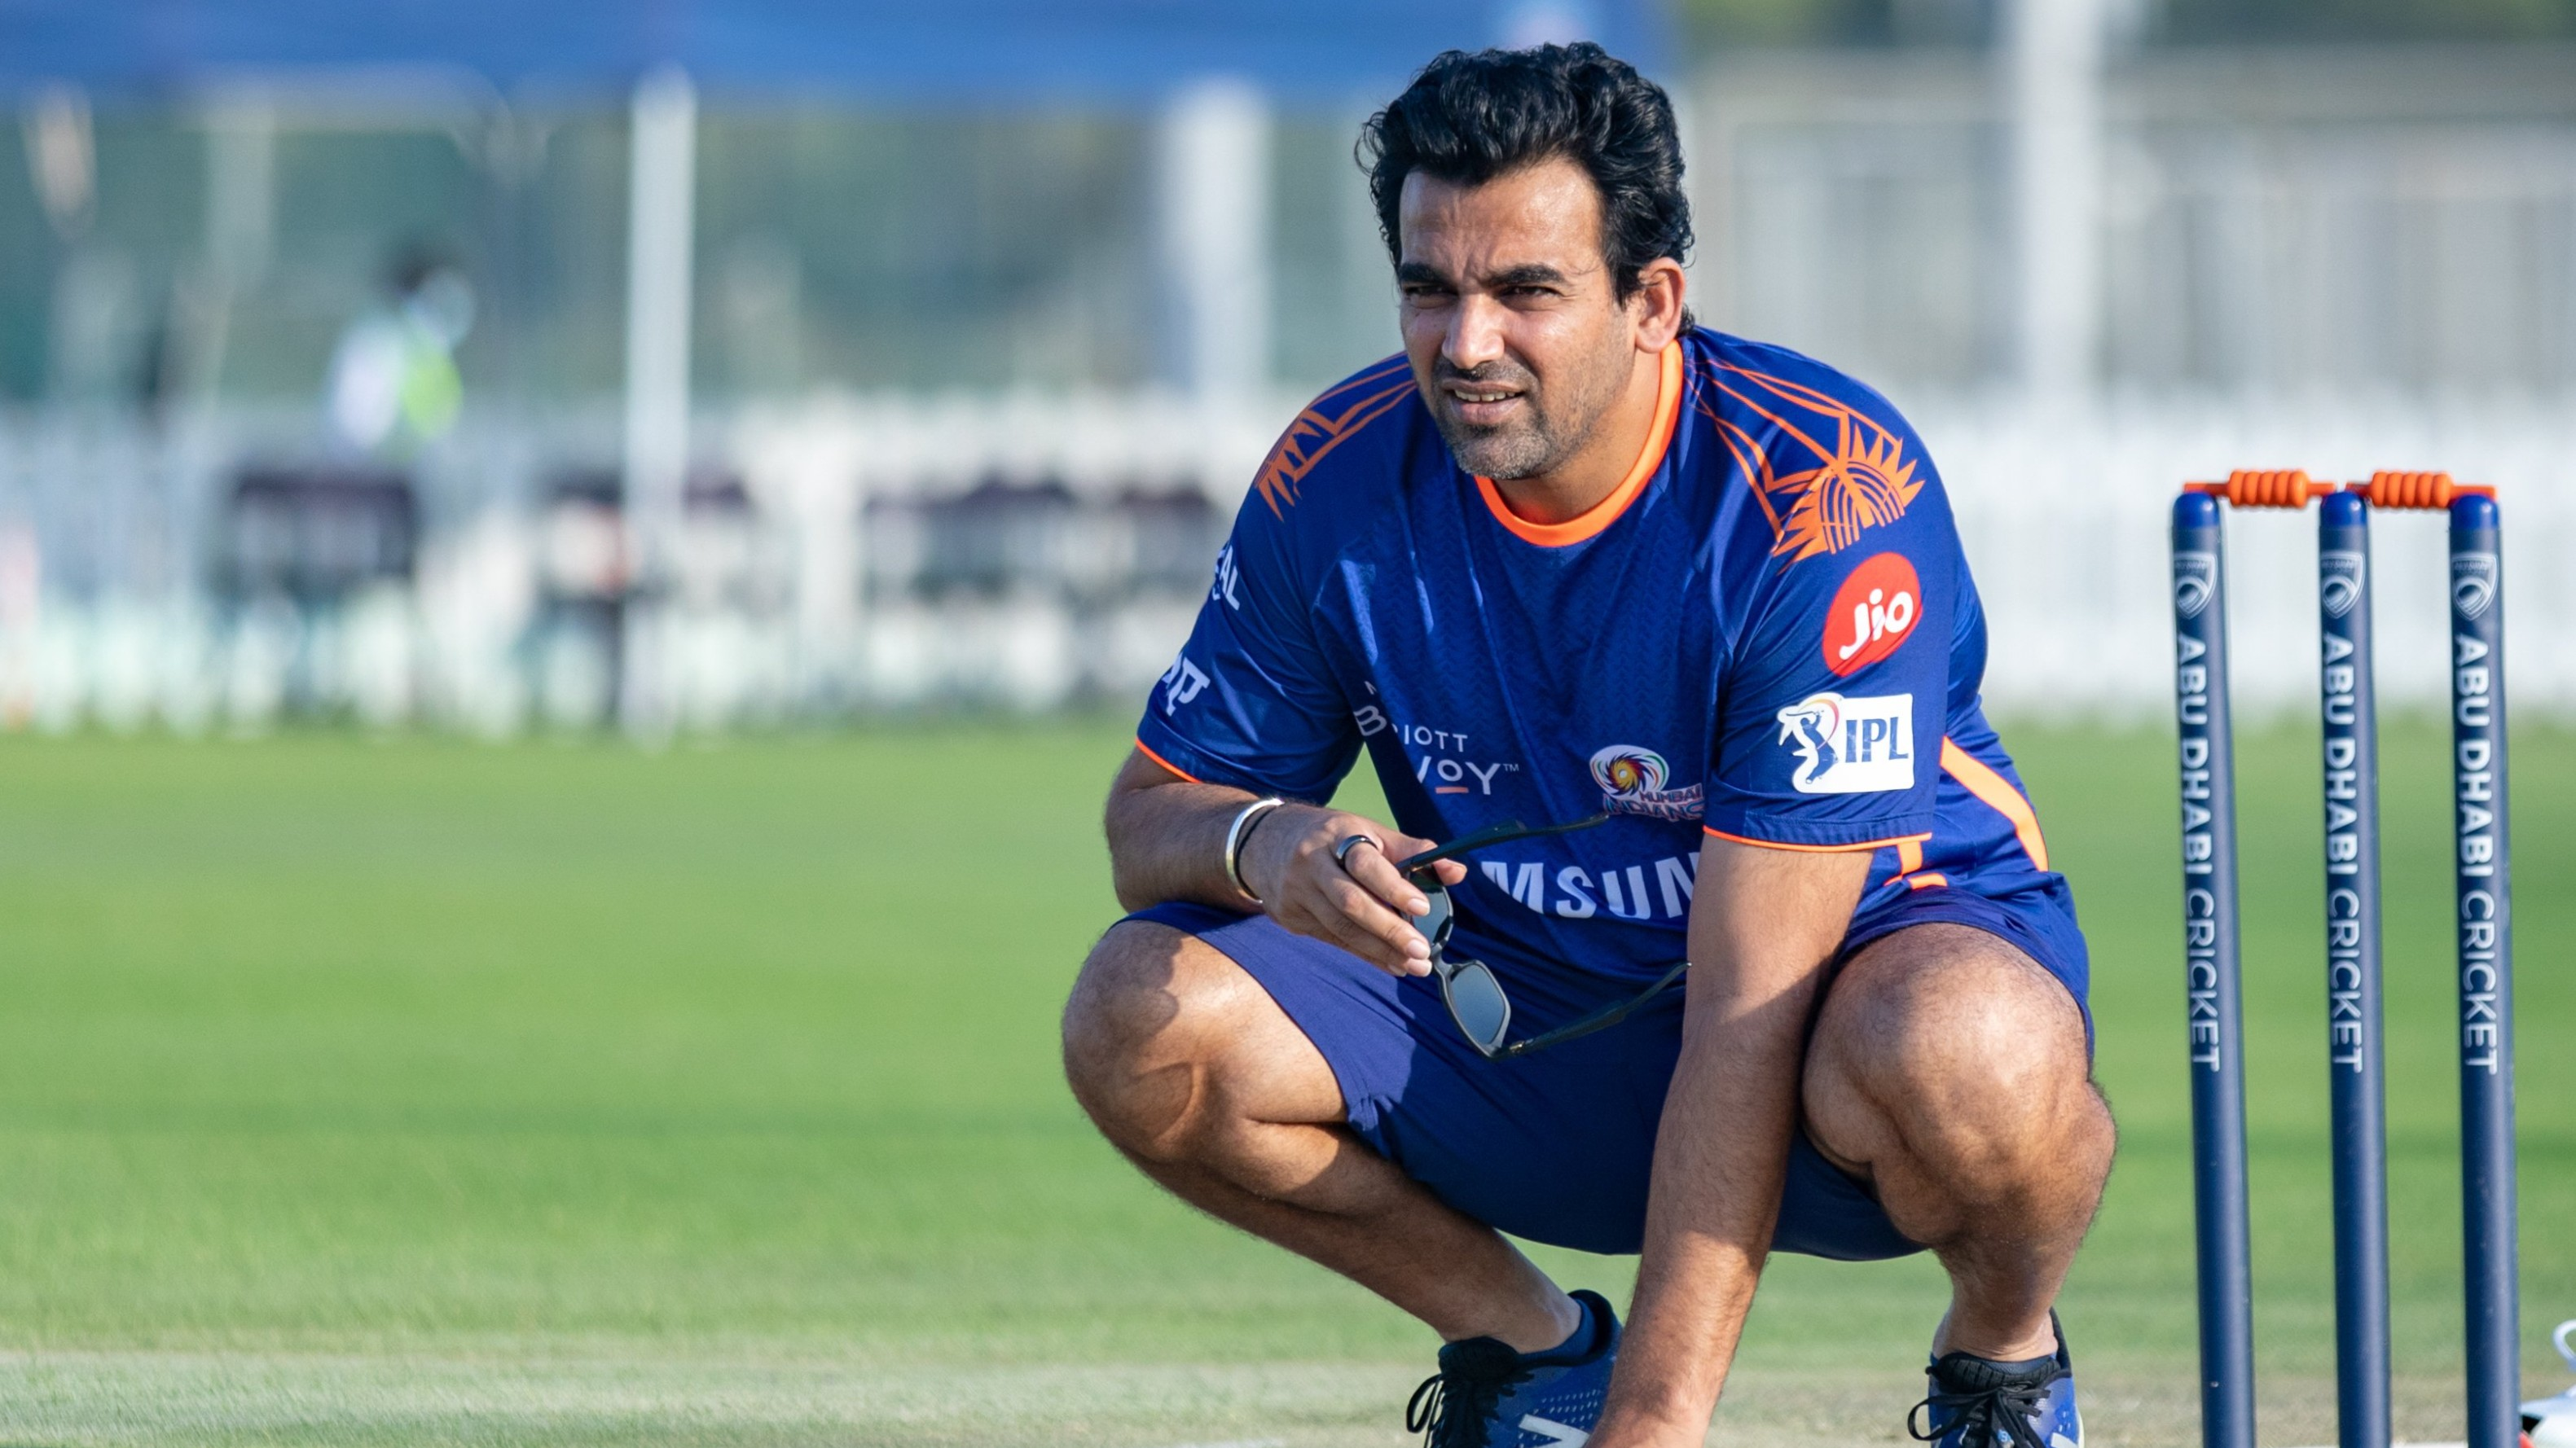 IPL 2020: WATCH - MI's Zaheer Khan opines that players need to get used to saliva ban